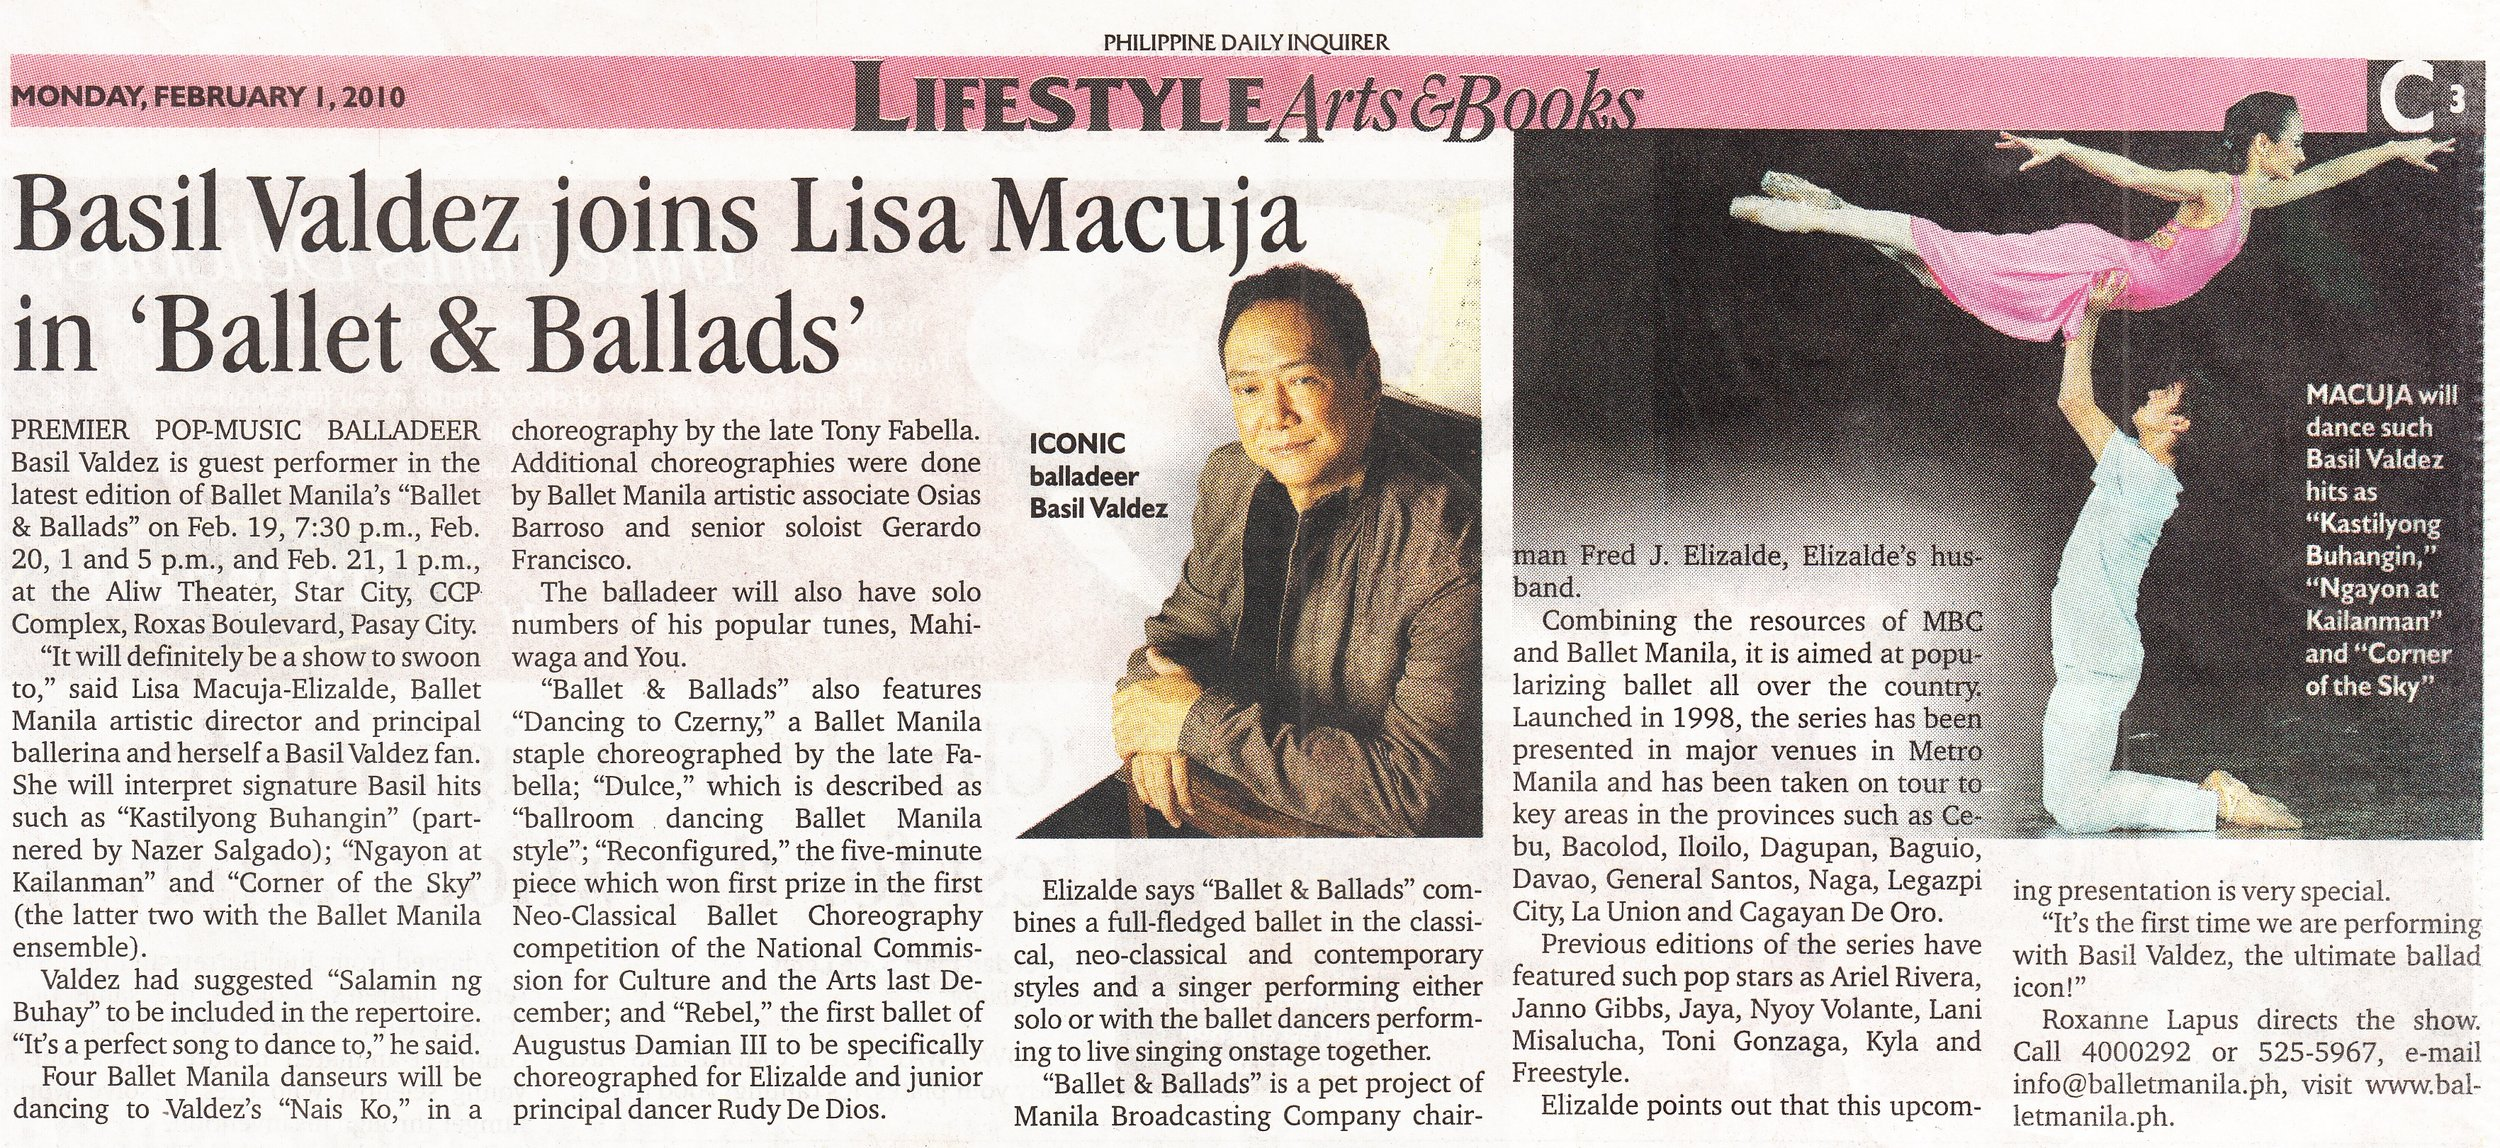 Newspaper clipping of  Ballet & Ballads  concert with Basil Valdez at Aliw Theater, 2010